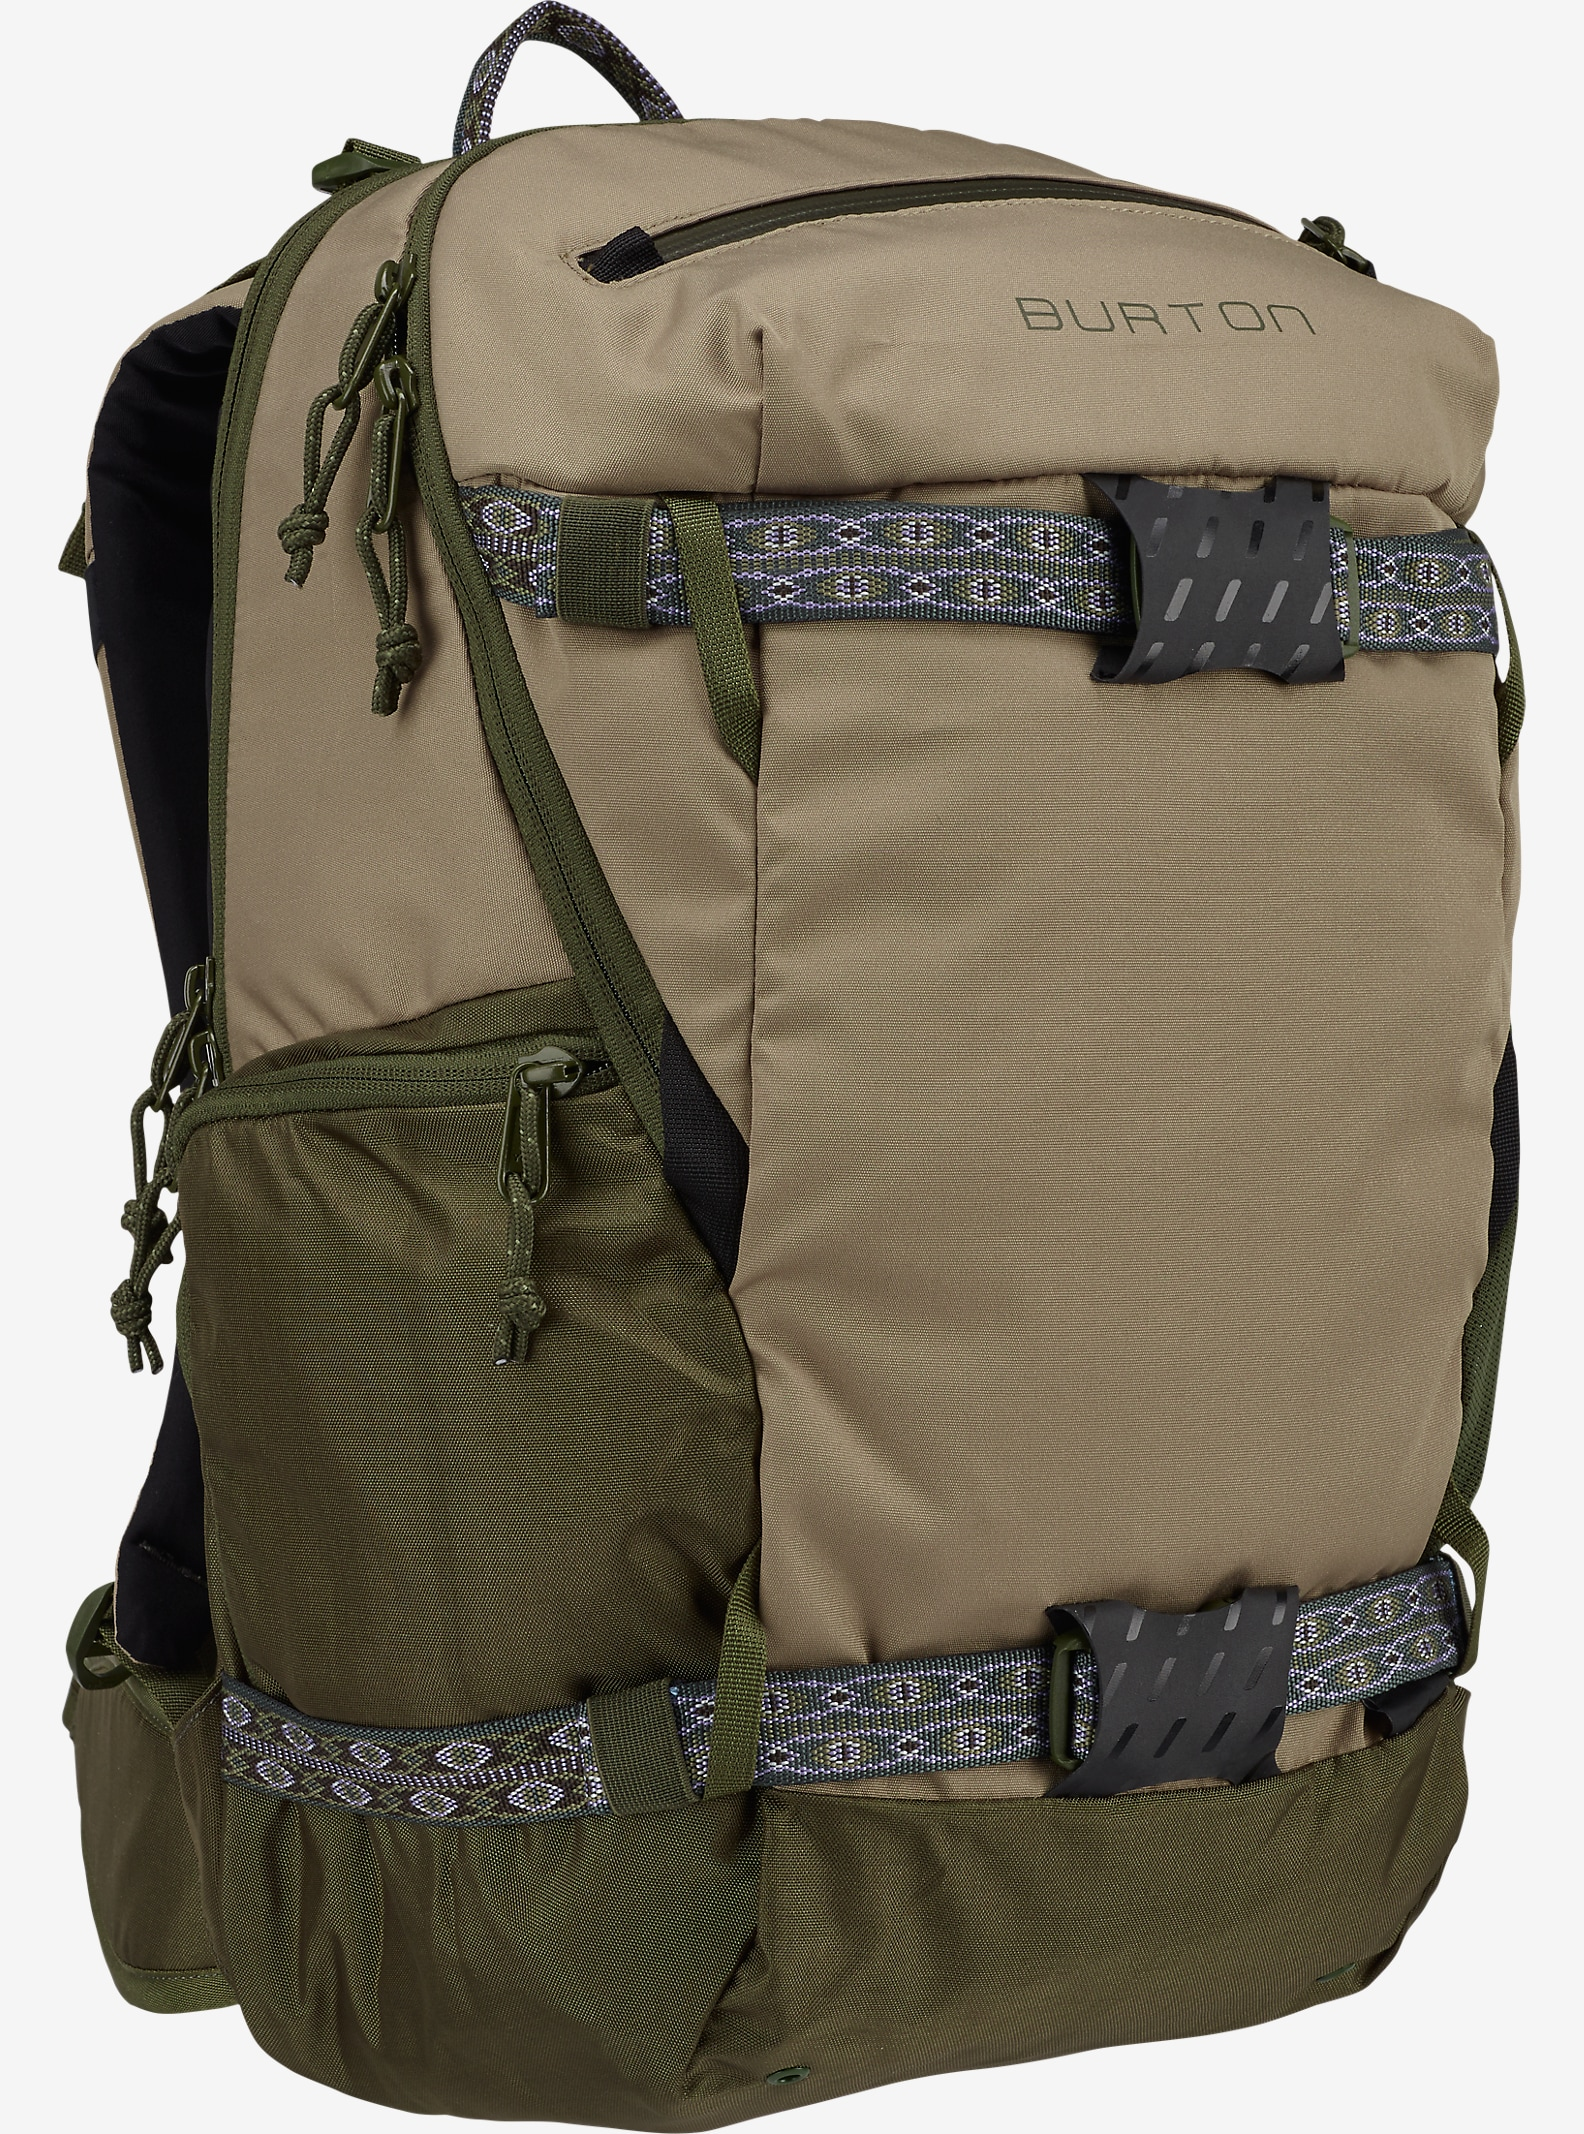 Burton Women's Rider's 23L Backpack shown in Rucksack Cordura®